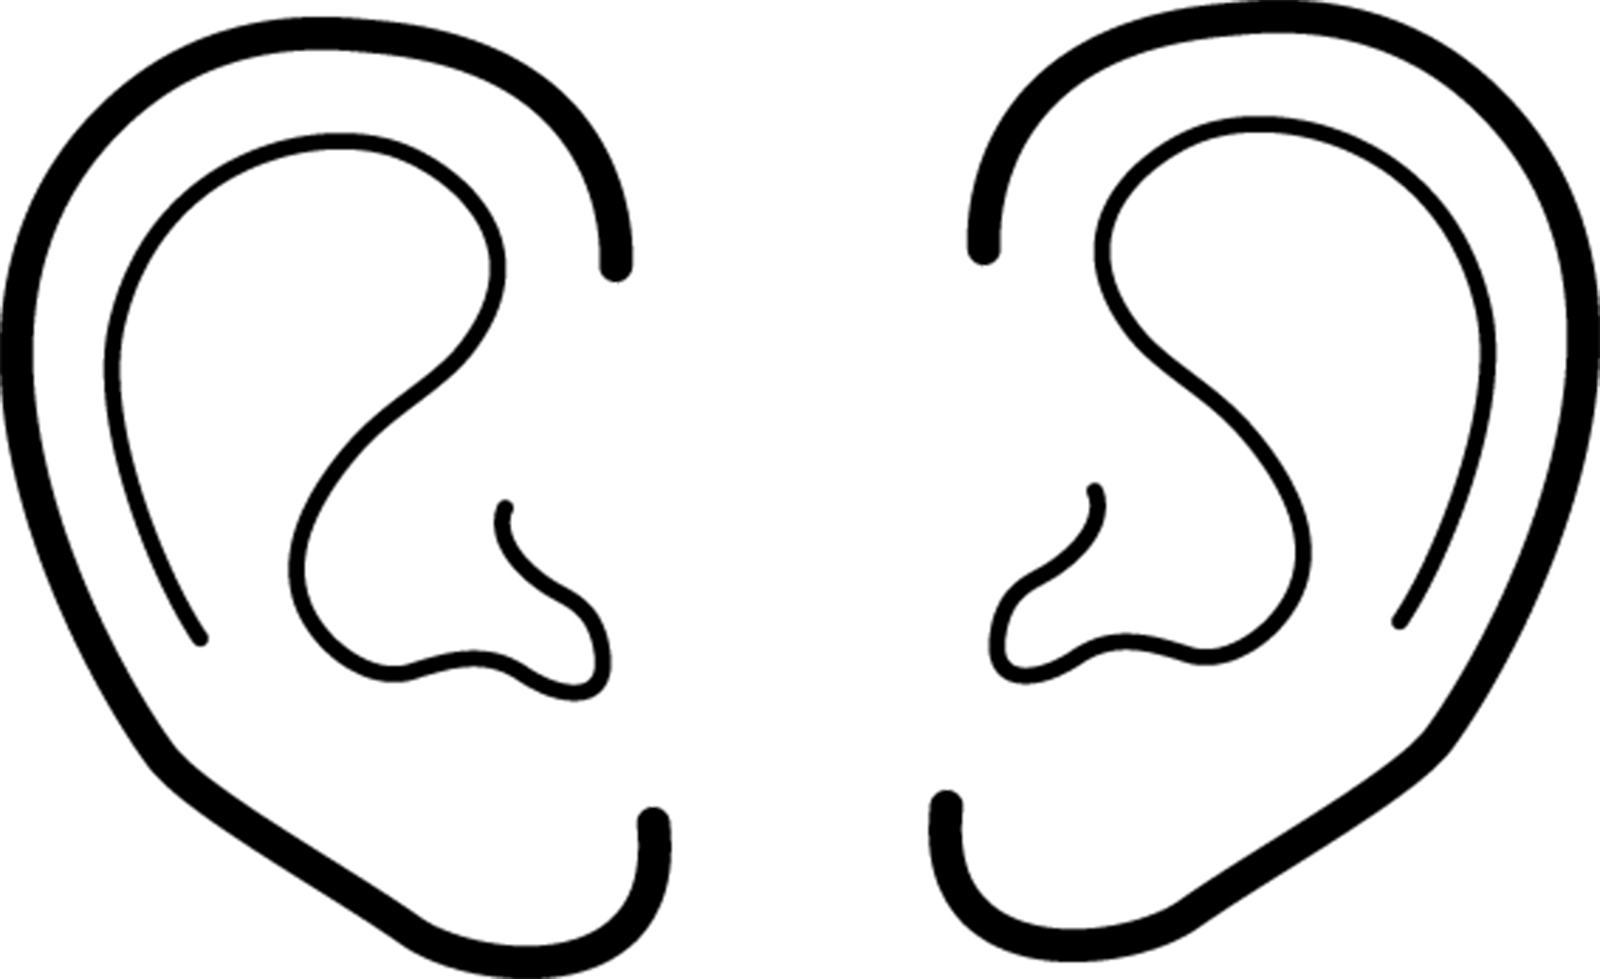 Ears clipart simple. Awesome design digital collection